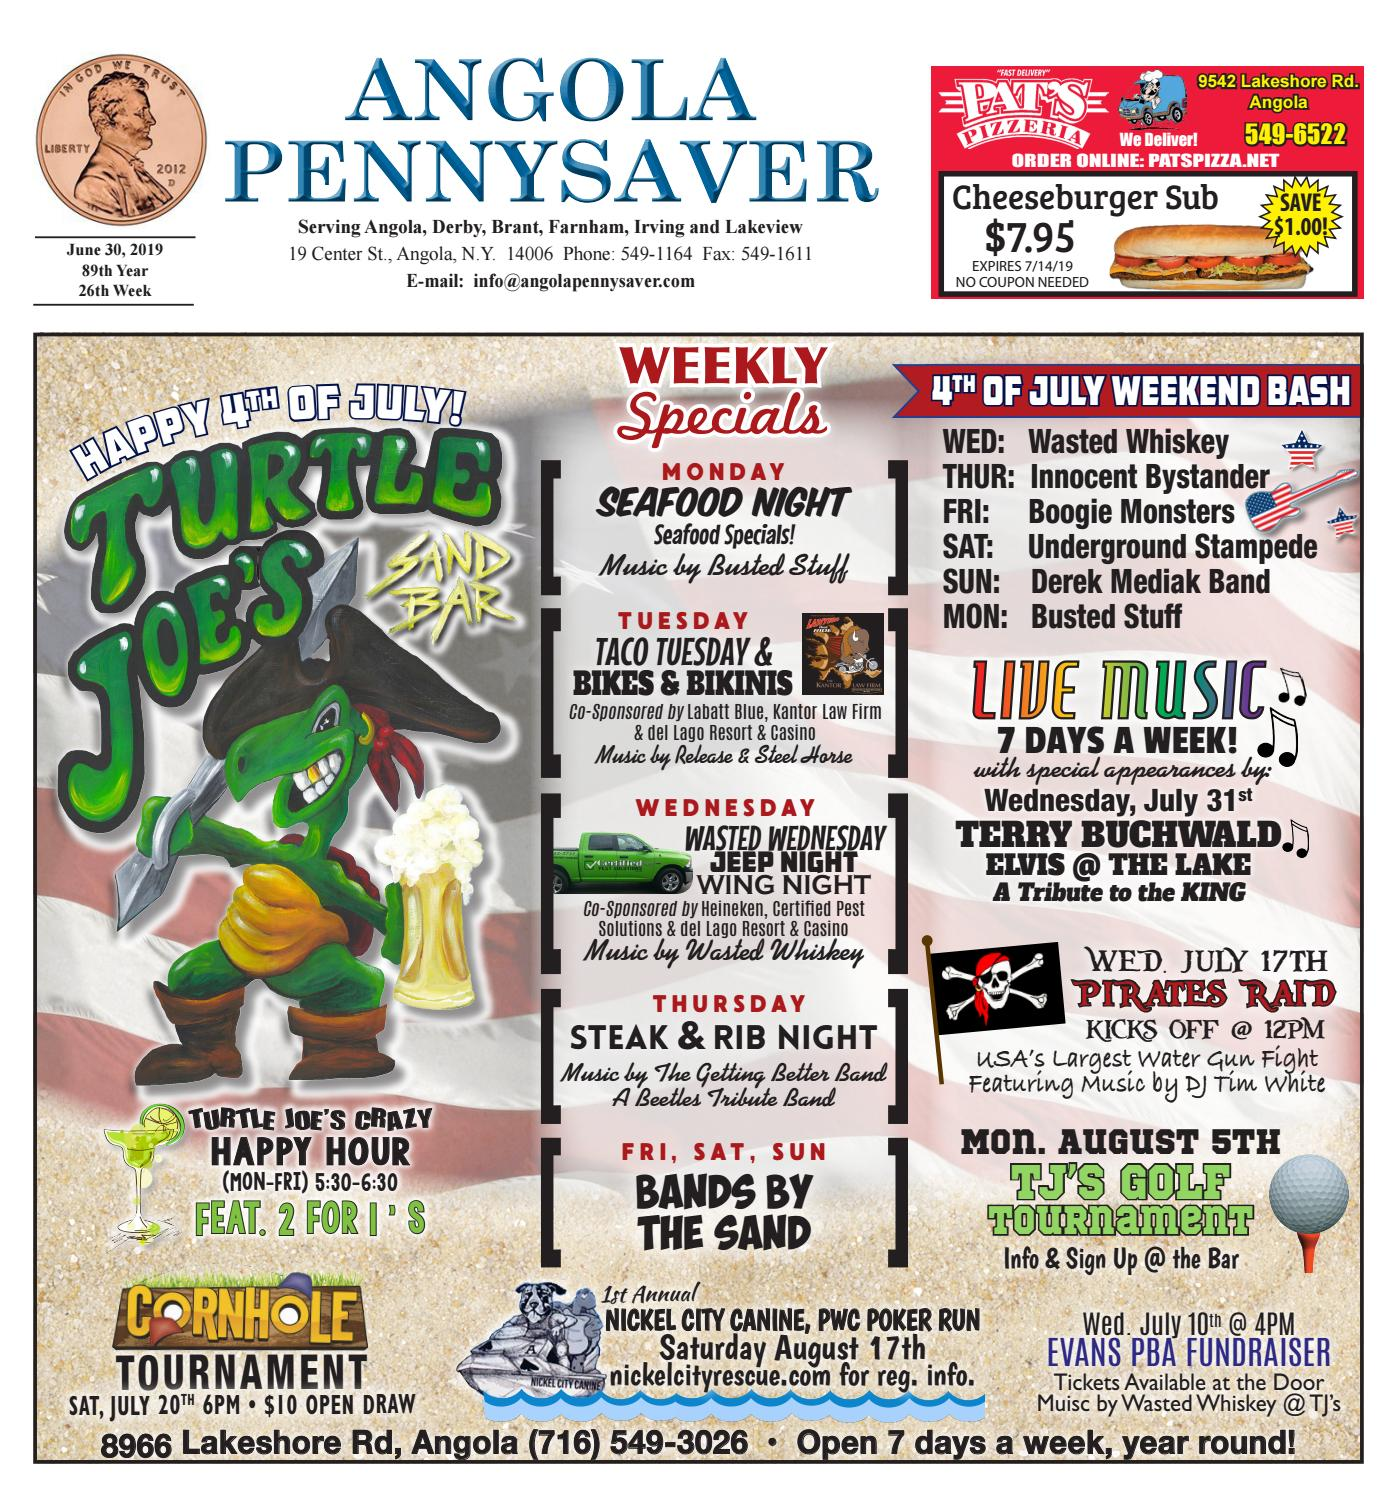 6/30/19 Angola Pennysaver by Angola Pennysaver - issuu